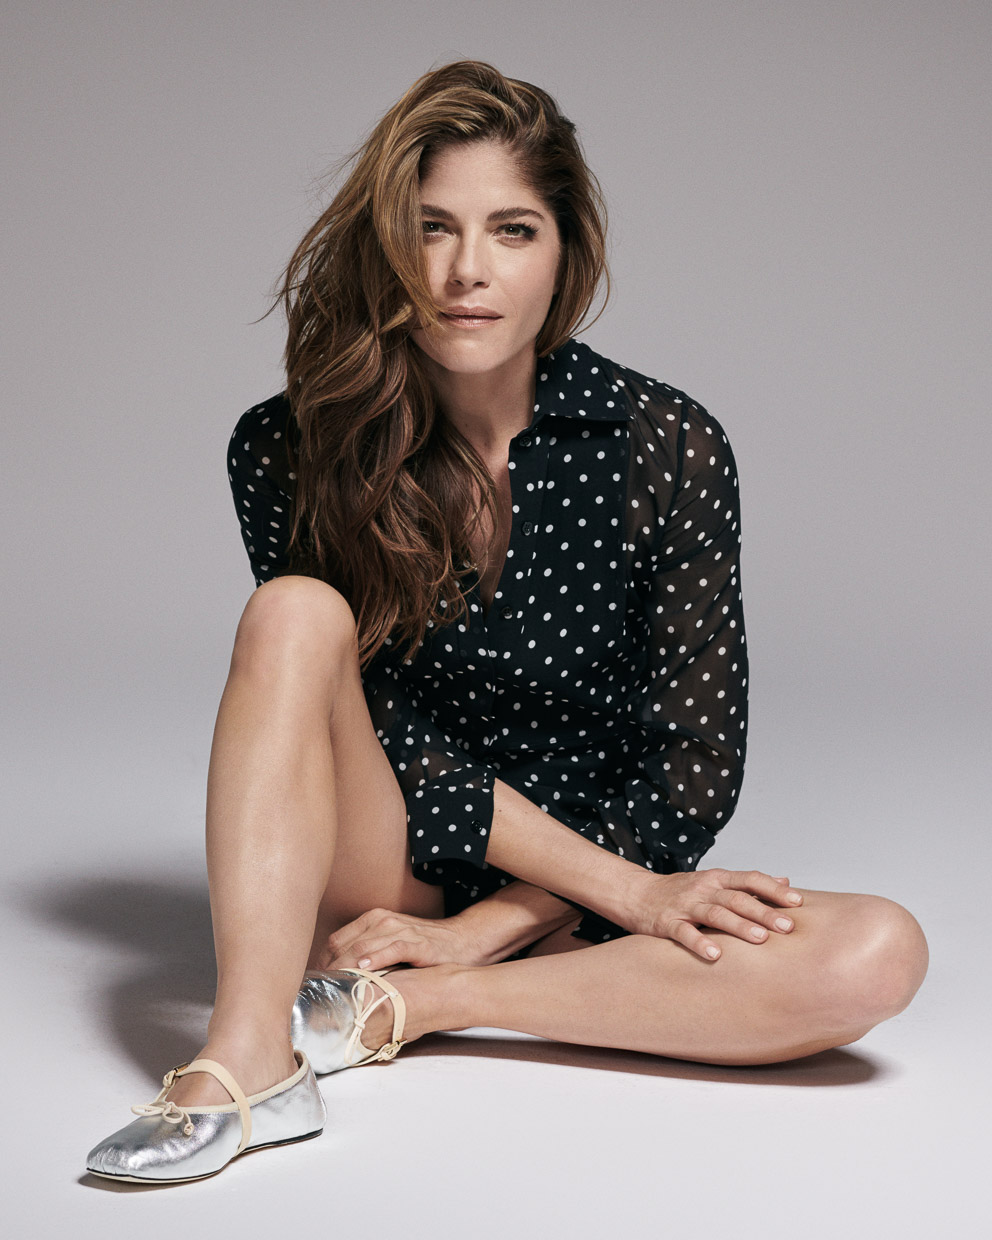 Selma Blair, actress. The Observer Magazine.